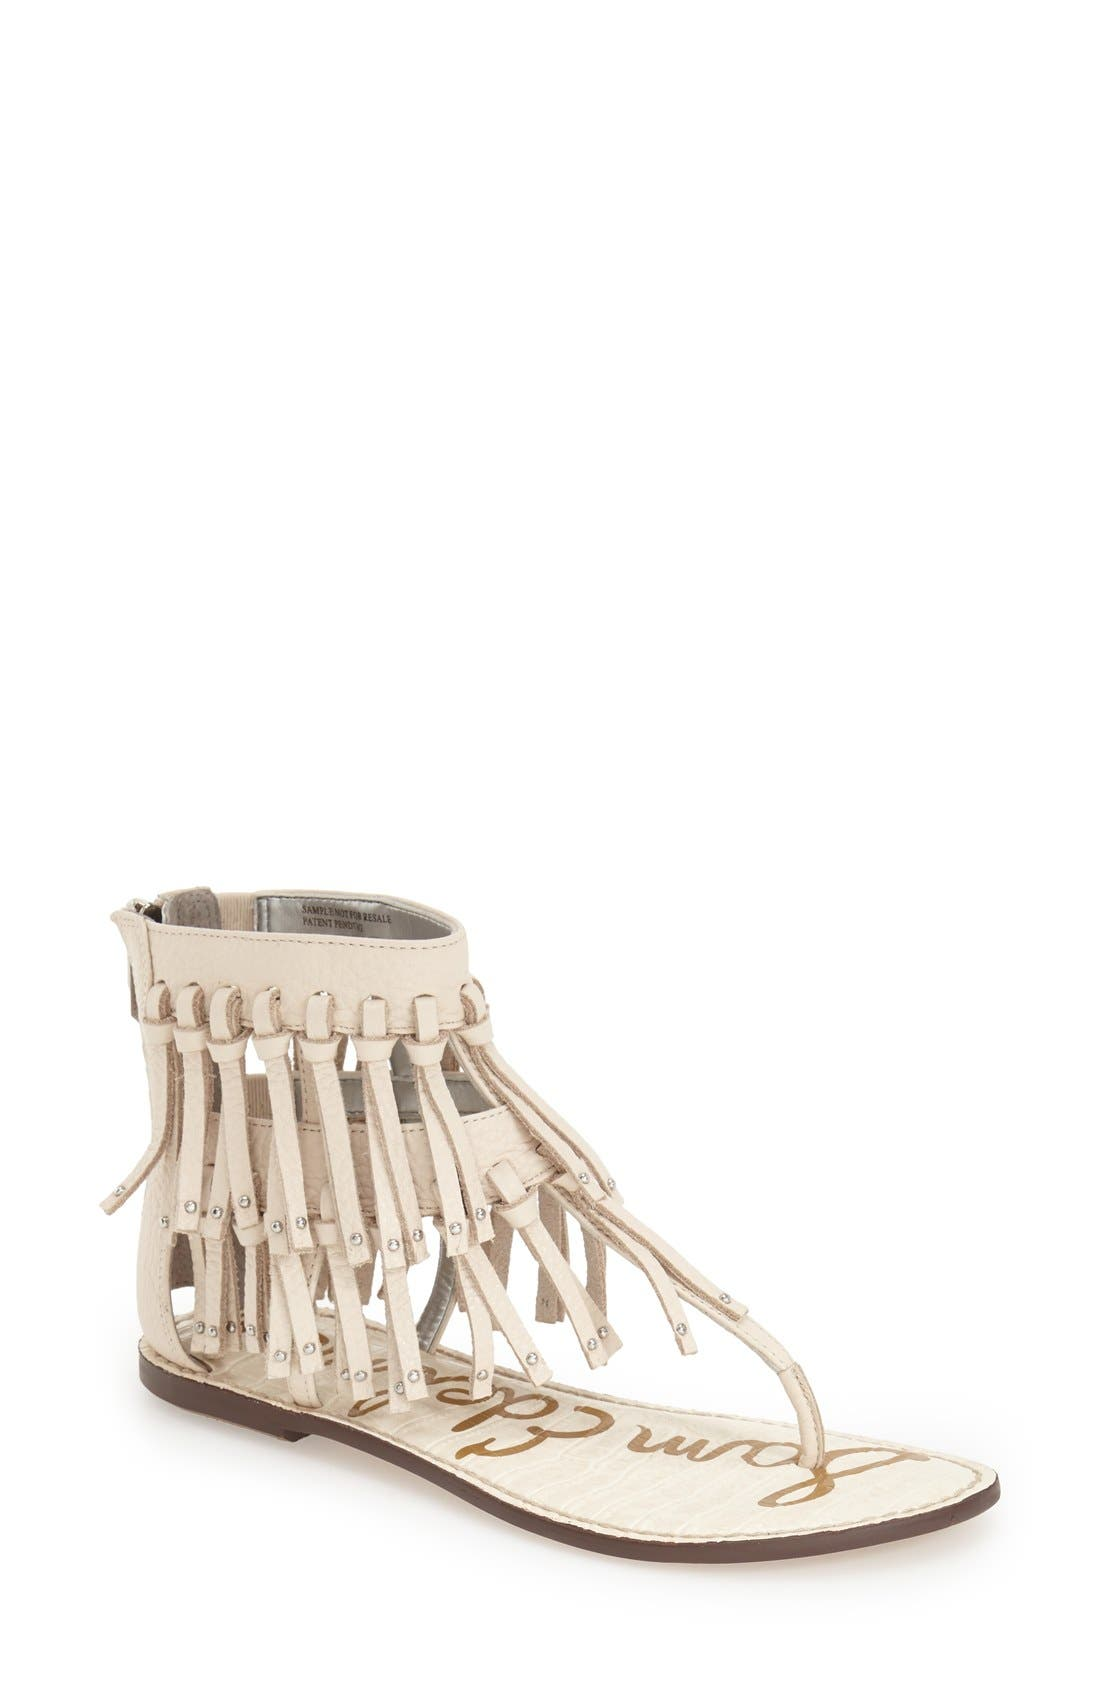 'Griffen' Fringe Sandal,                             Main thumbnail 1, color,                             Modern Ivory Leather